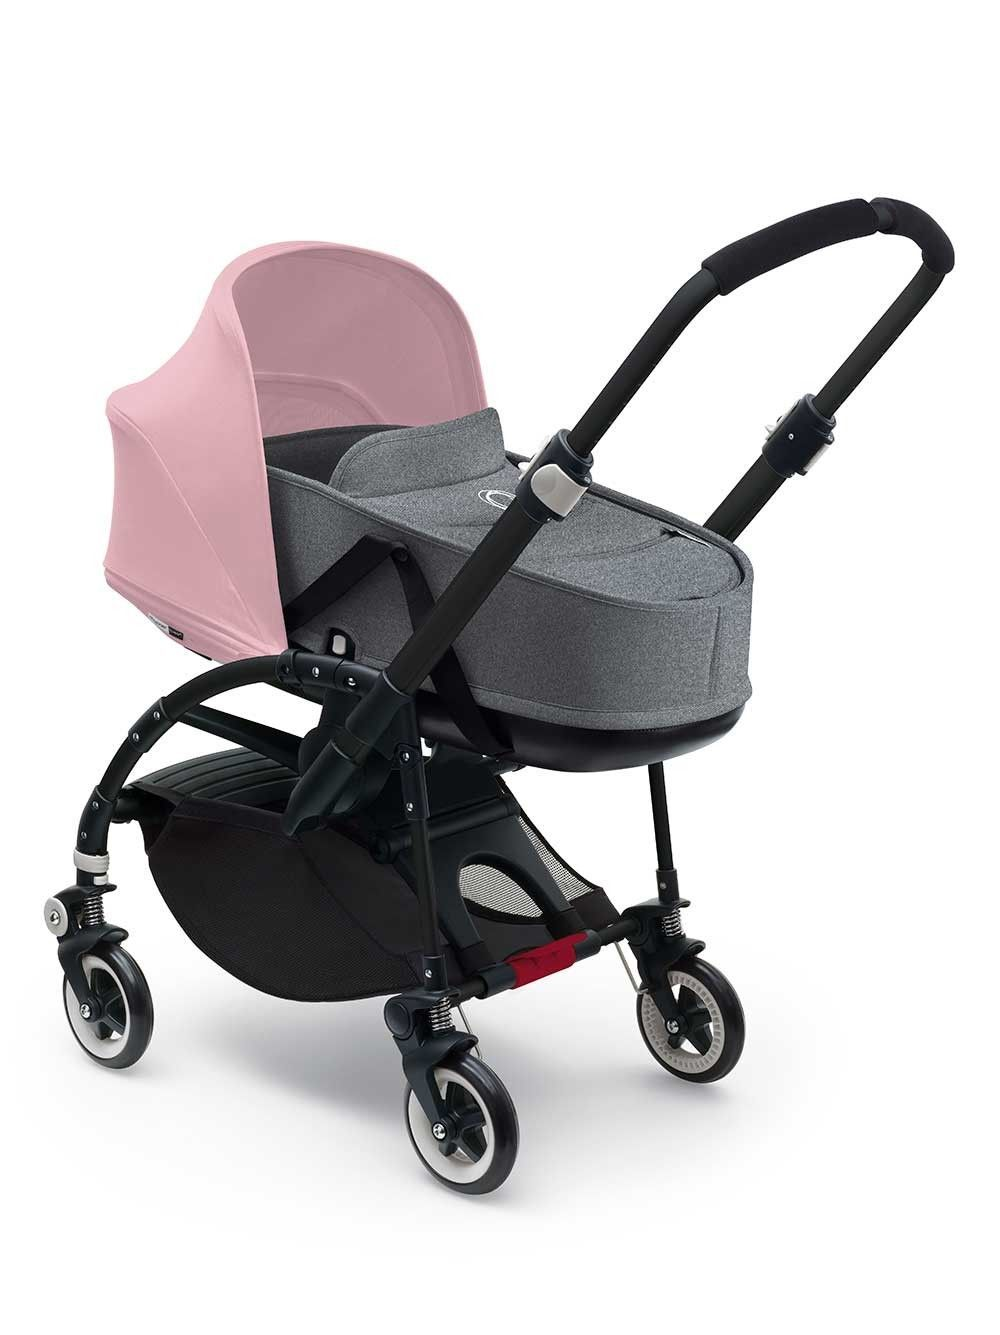 New Bugaboo Bee3 with soft pink sun canopy and grey baby bassinet. Love it! 6d9323fd8e